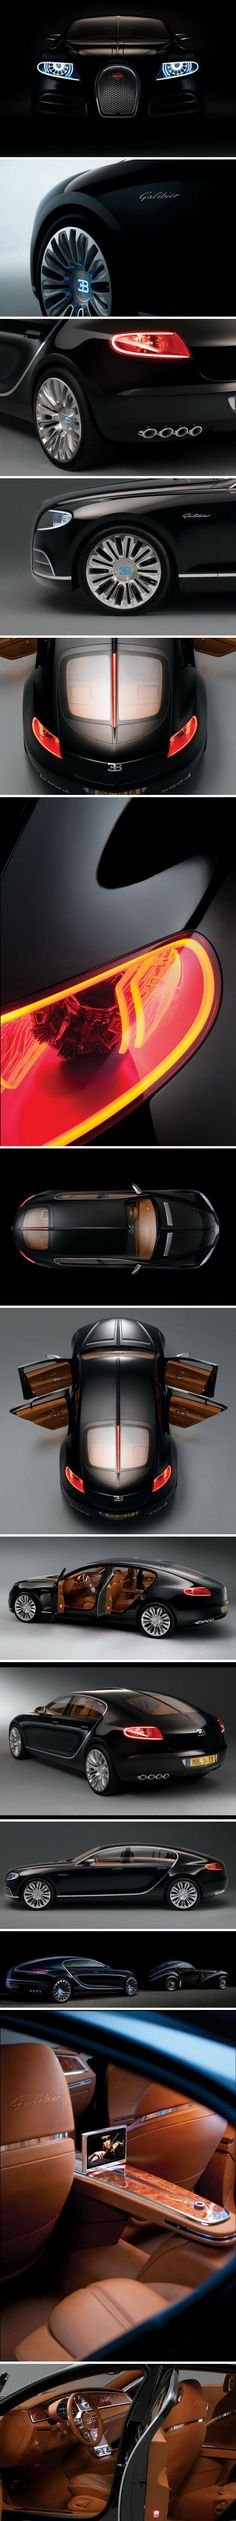 Bugatti 16C Galibier - 1000 HP - priced at 1.4 Mil USD